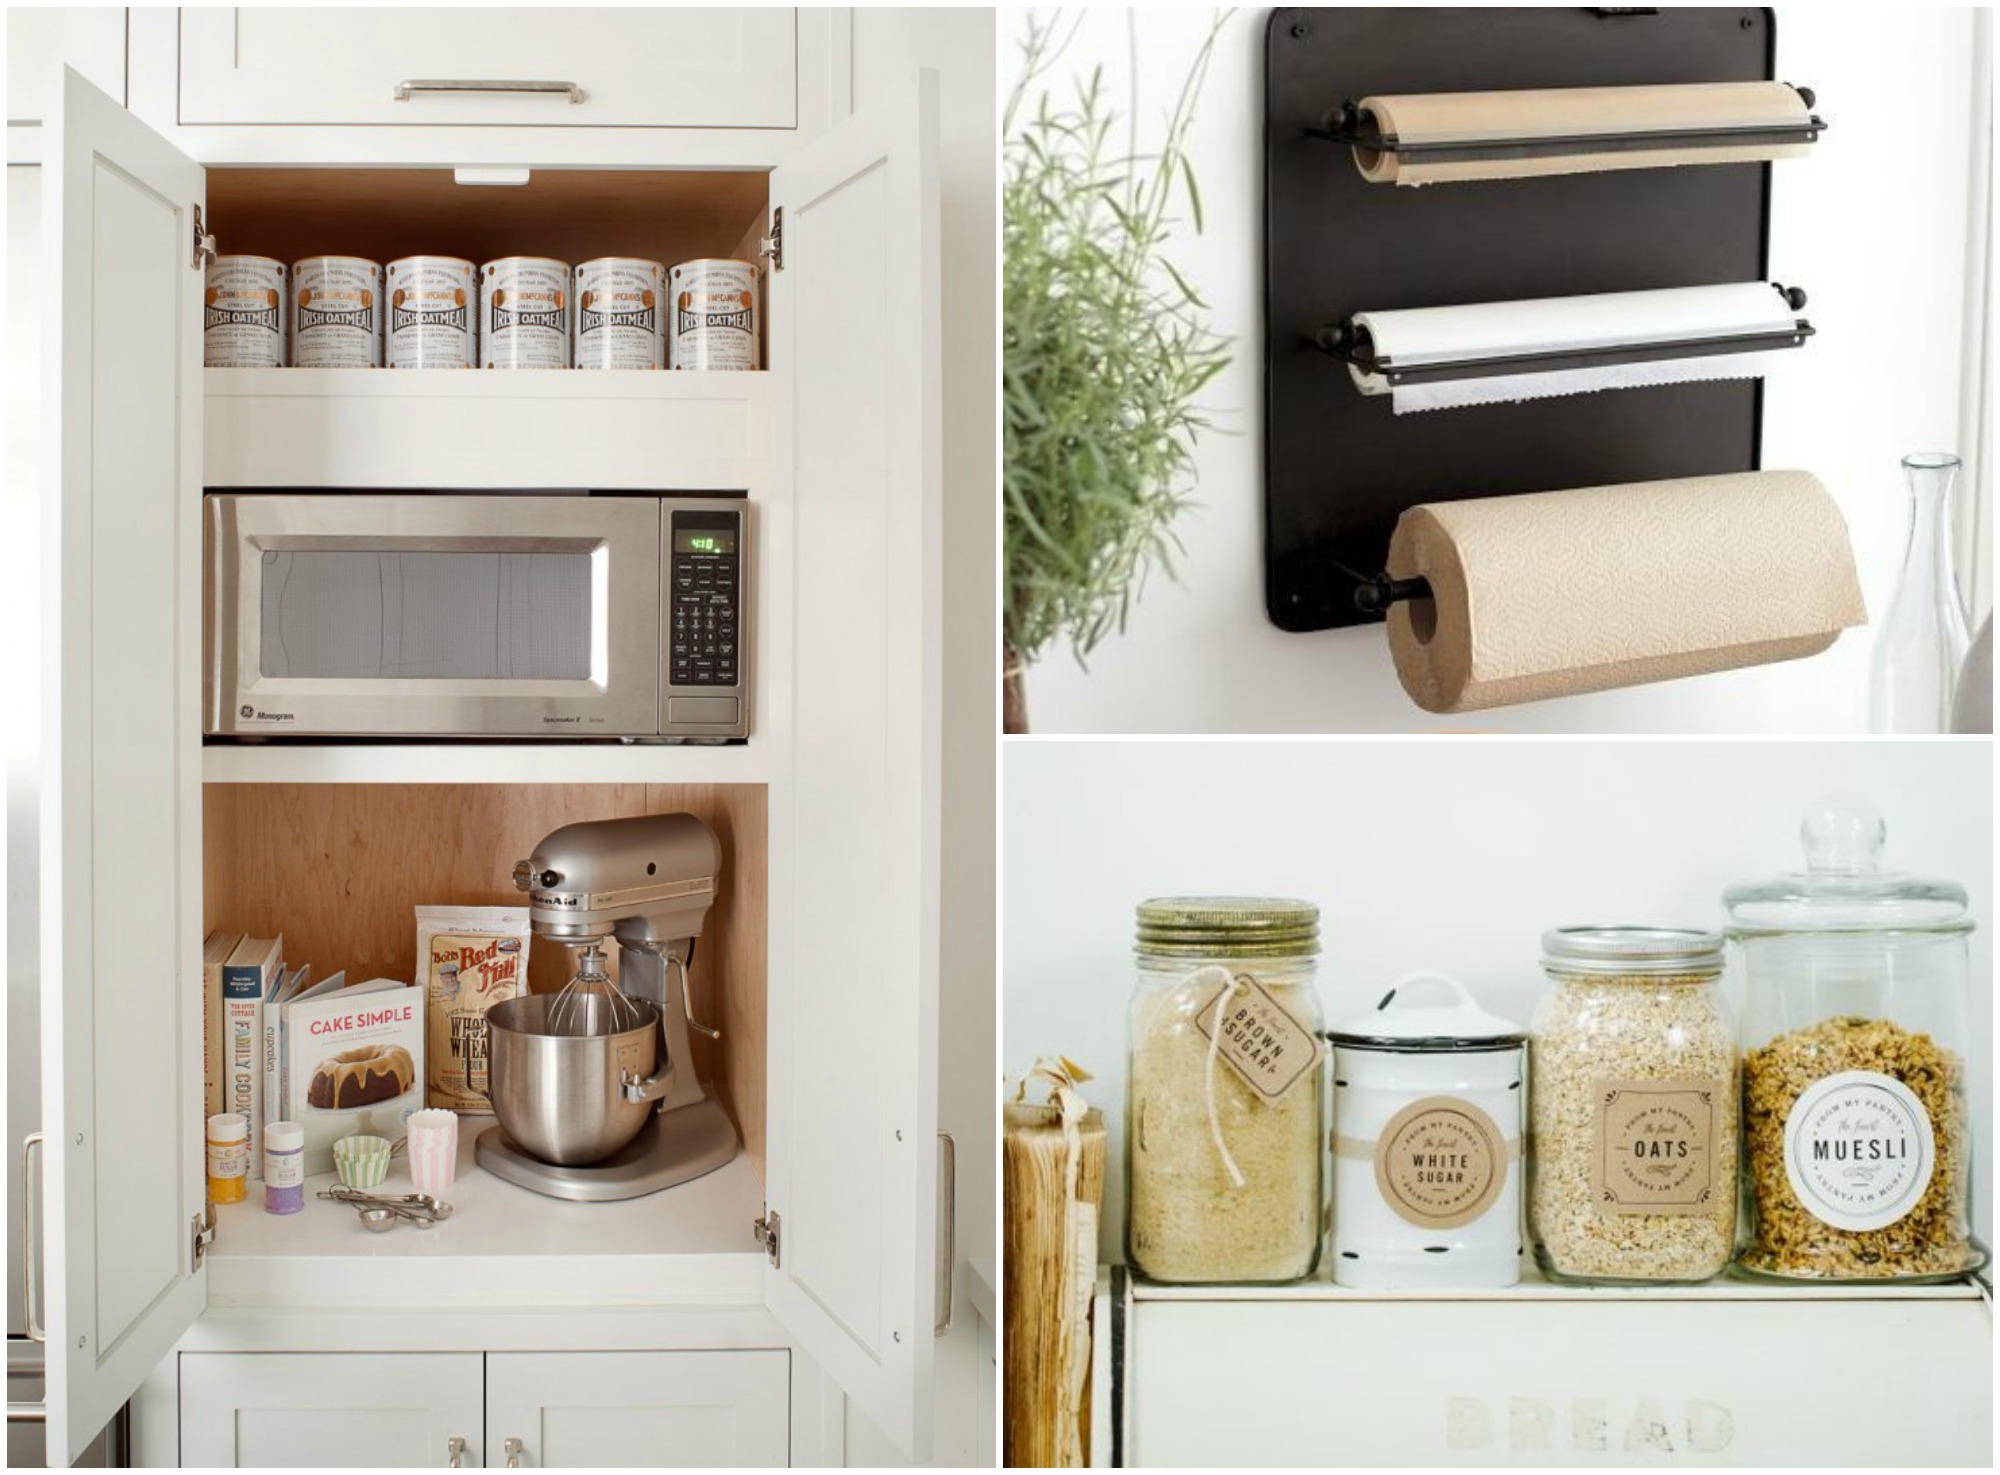 9 beyond brilliant kitchen hacks that 39 ll make your life easier for Kitchen organization hacks